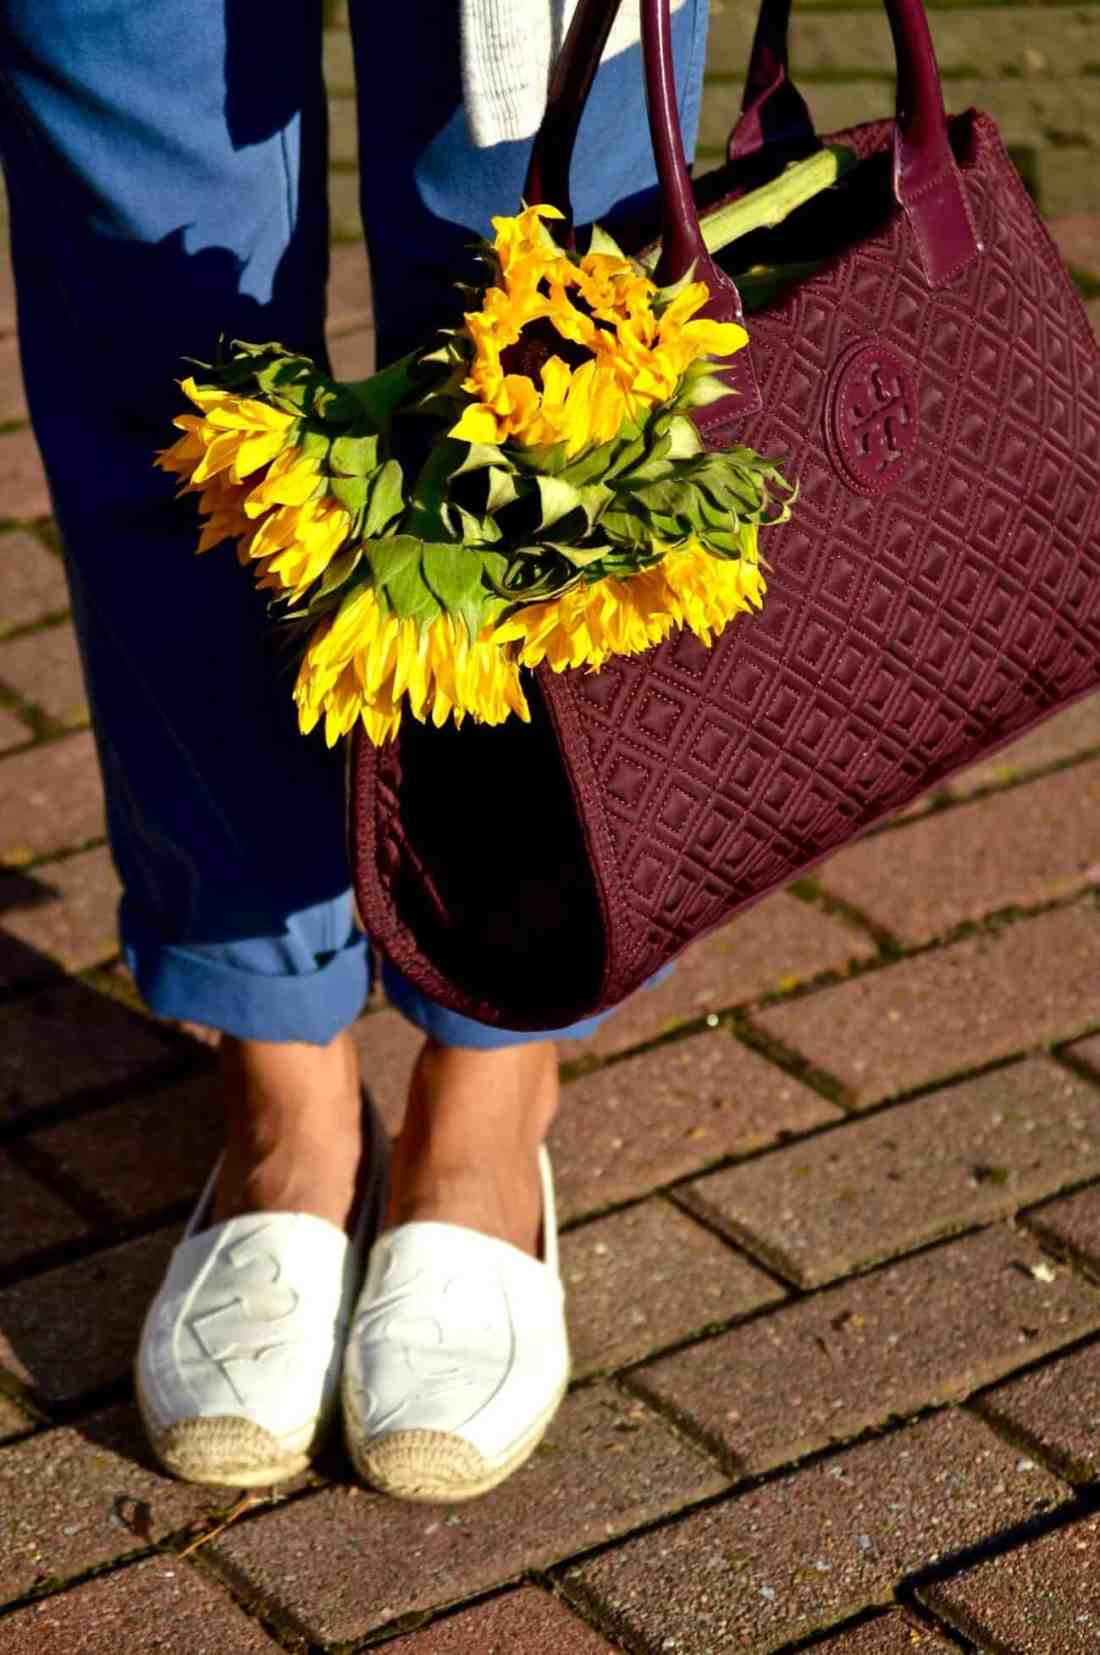 tory burch shoes and bag